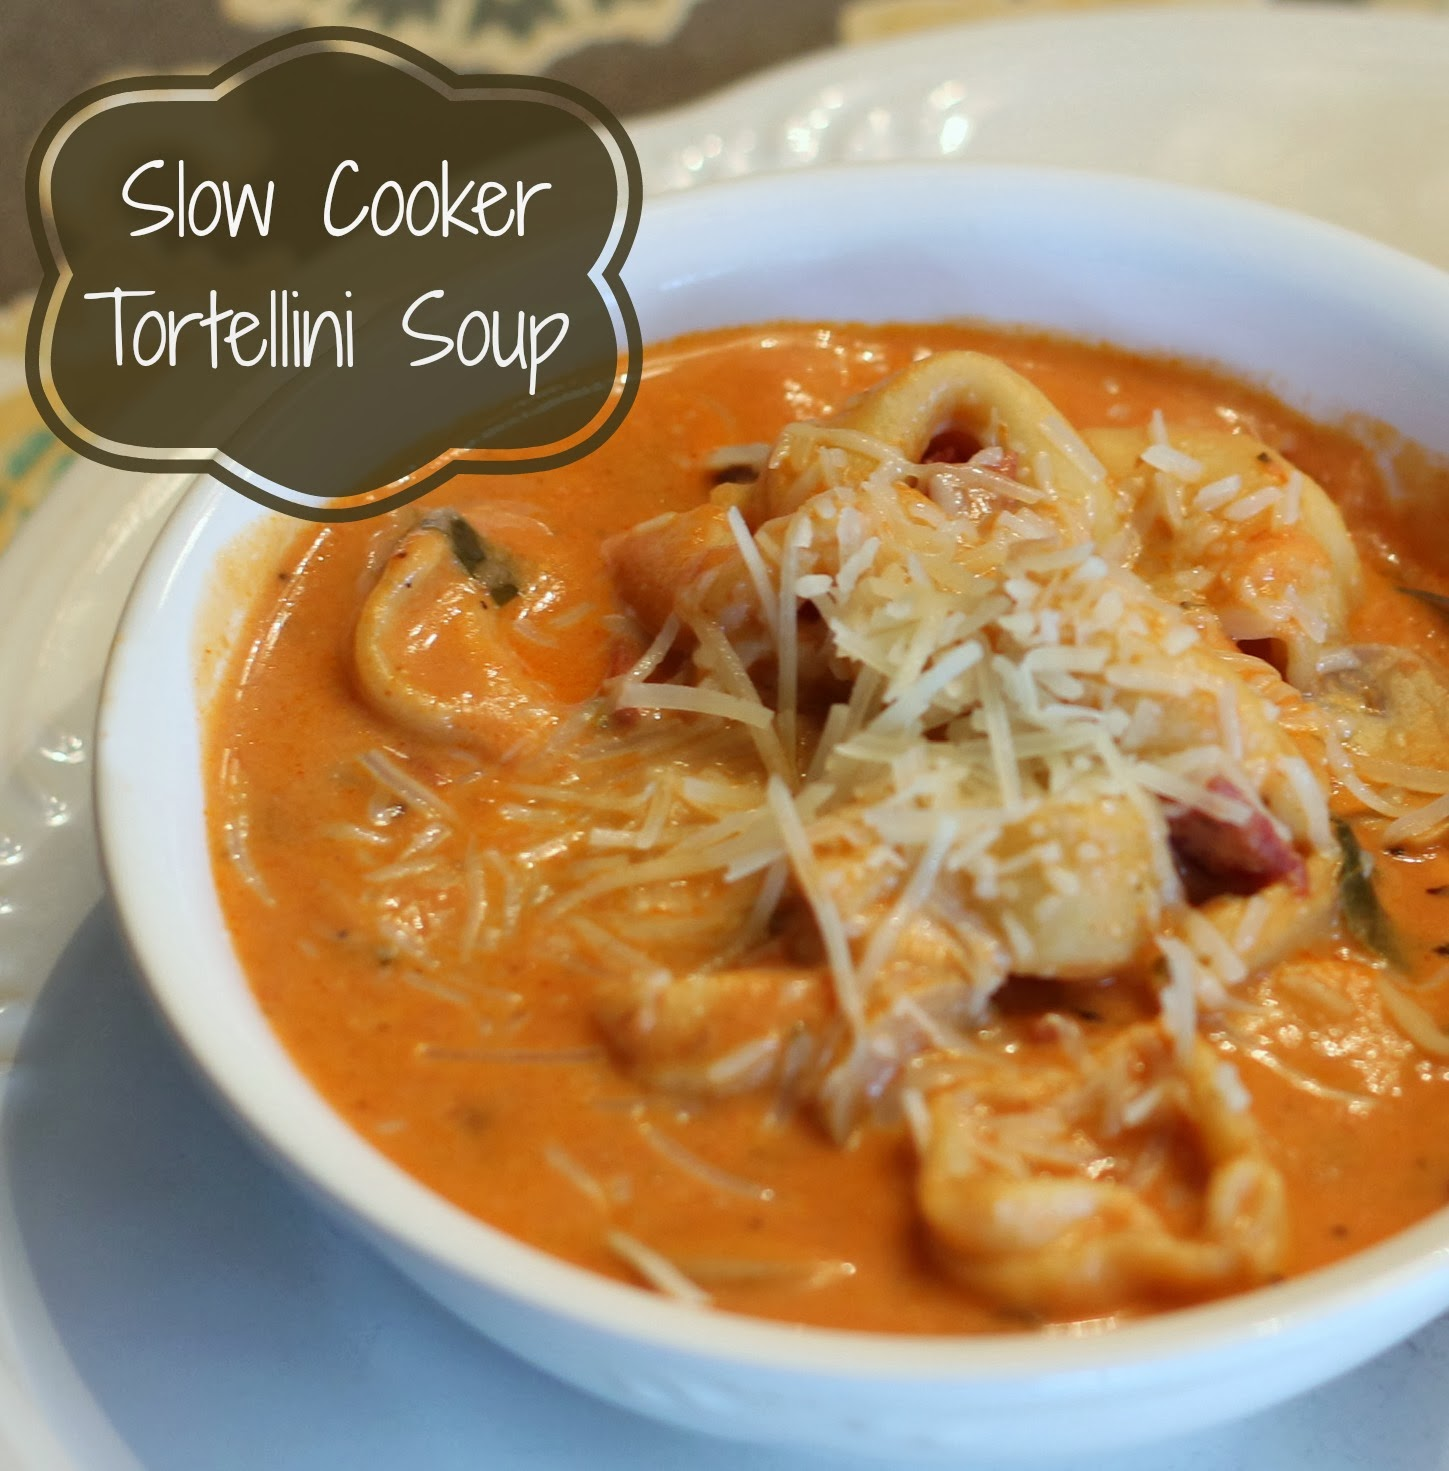 Slow Cooker Tortellini Soup is a quick, easy and hearty.